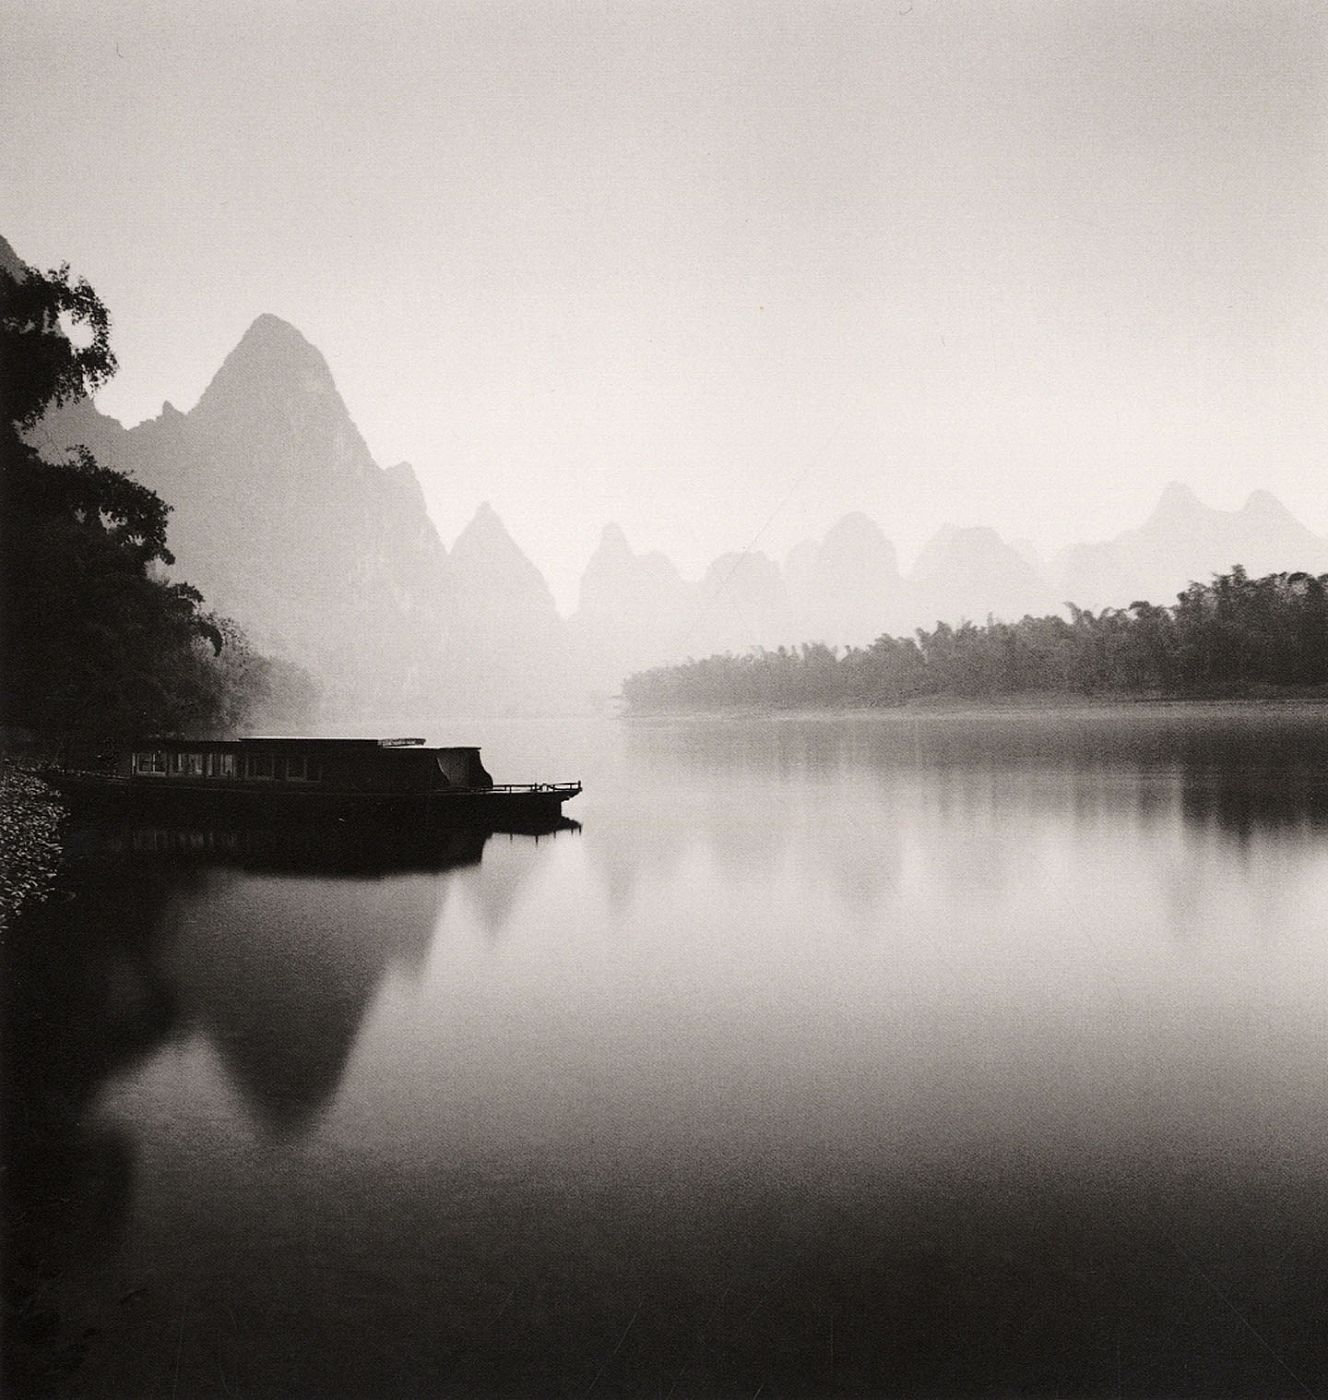 Recent Travels: Photographs by Michael Kenna (HSBC Holdings PLC, U.K.)